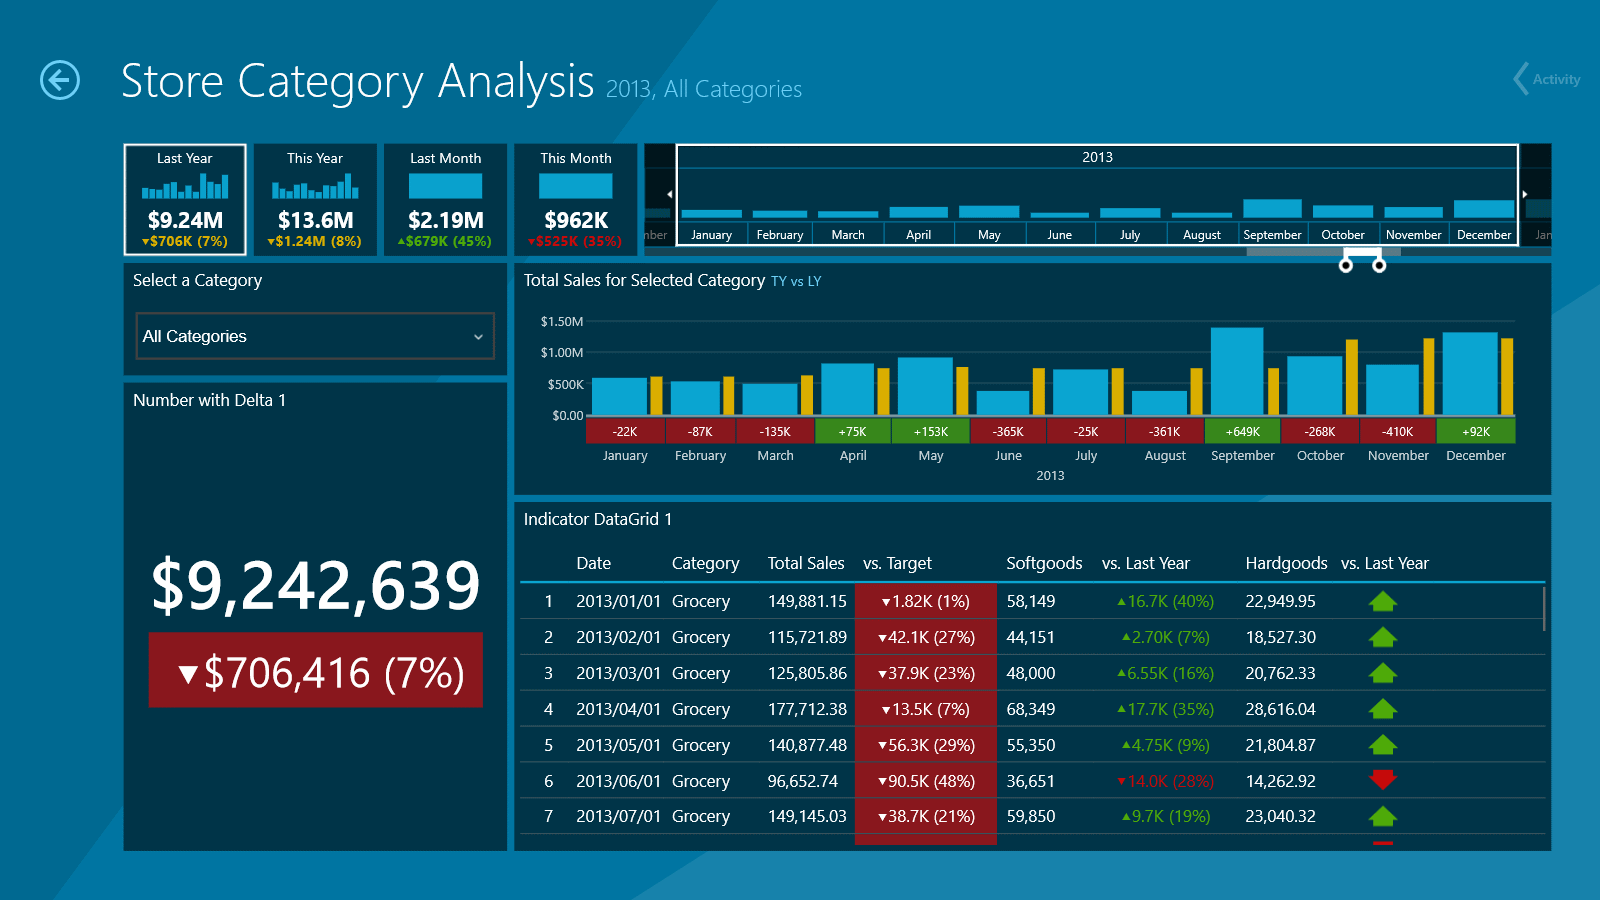 Dashboard: Store Category Analysis